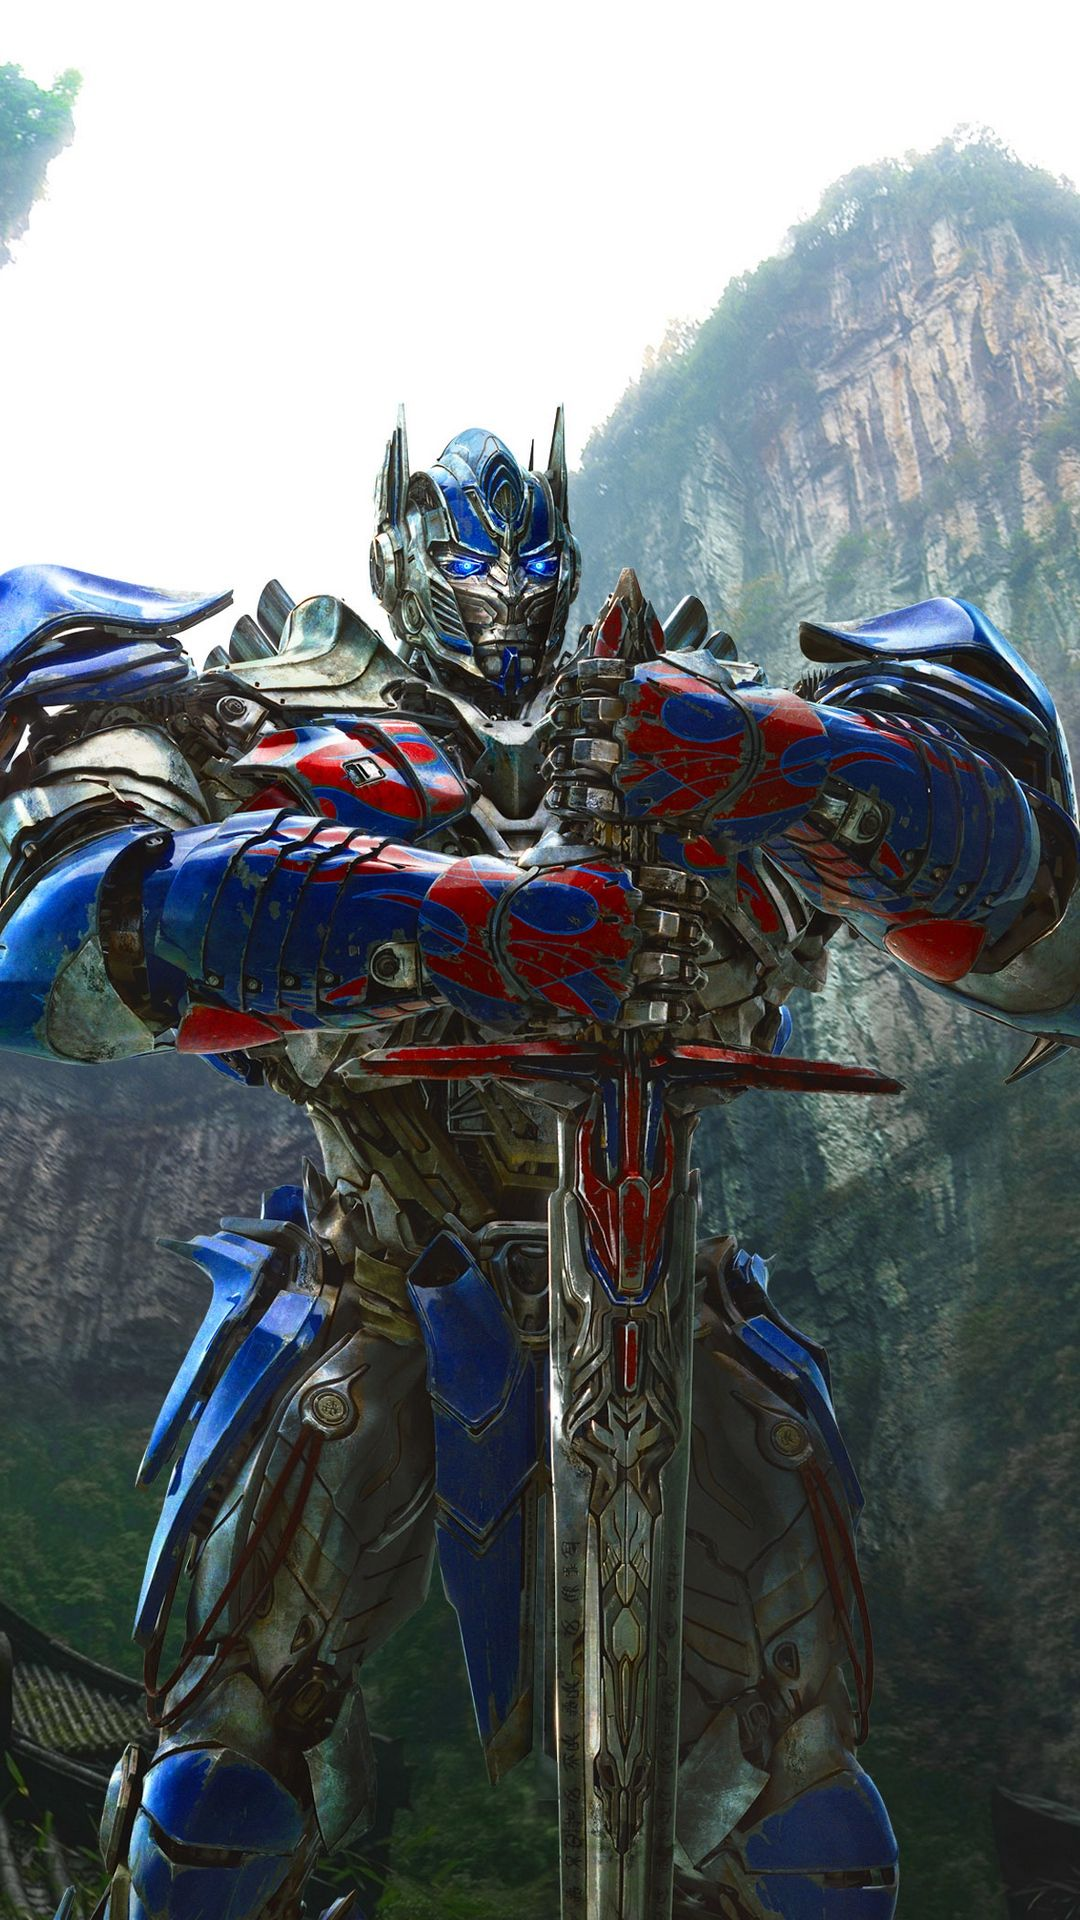 1080x1920 Wallpaper Transformers Age Of Extinction Transformers 4